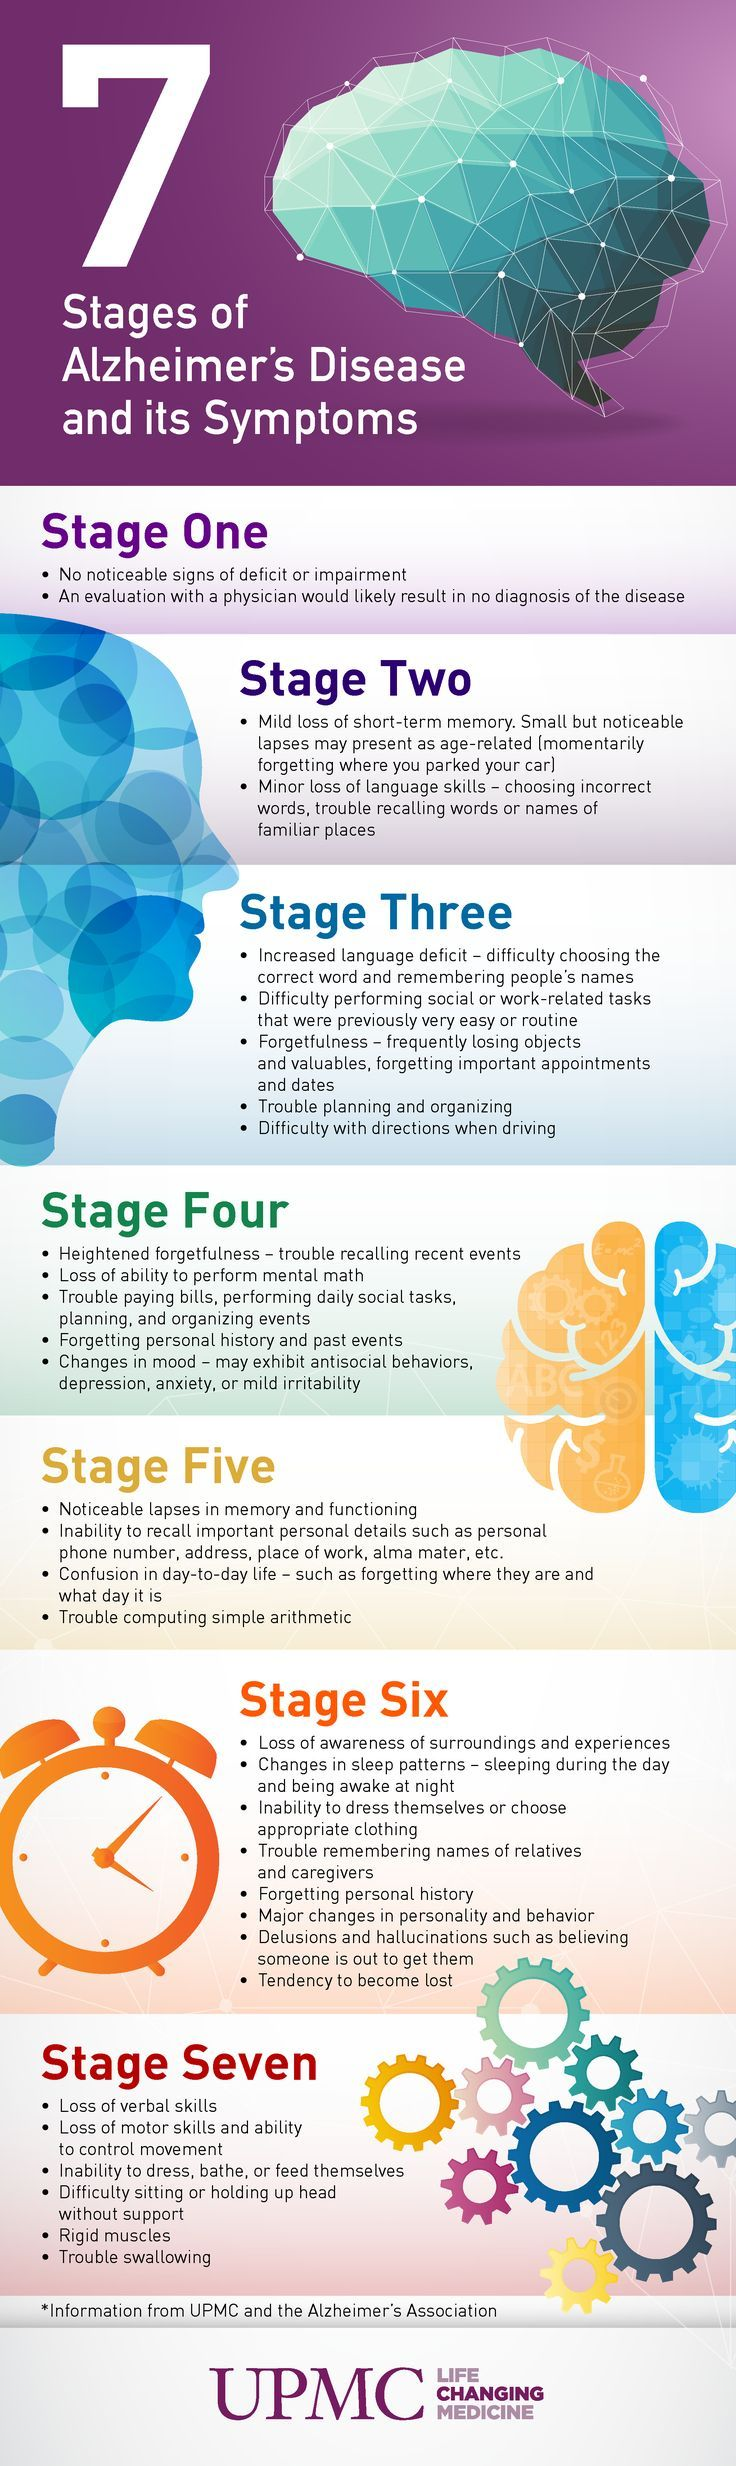 Recognizing the Signs of Alzheimer's Disease